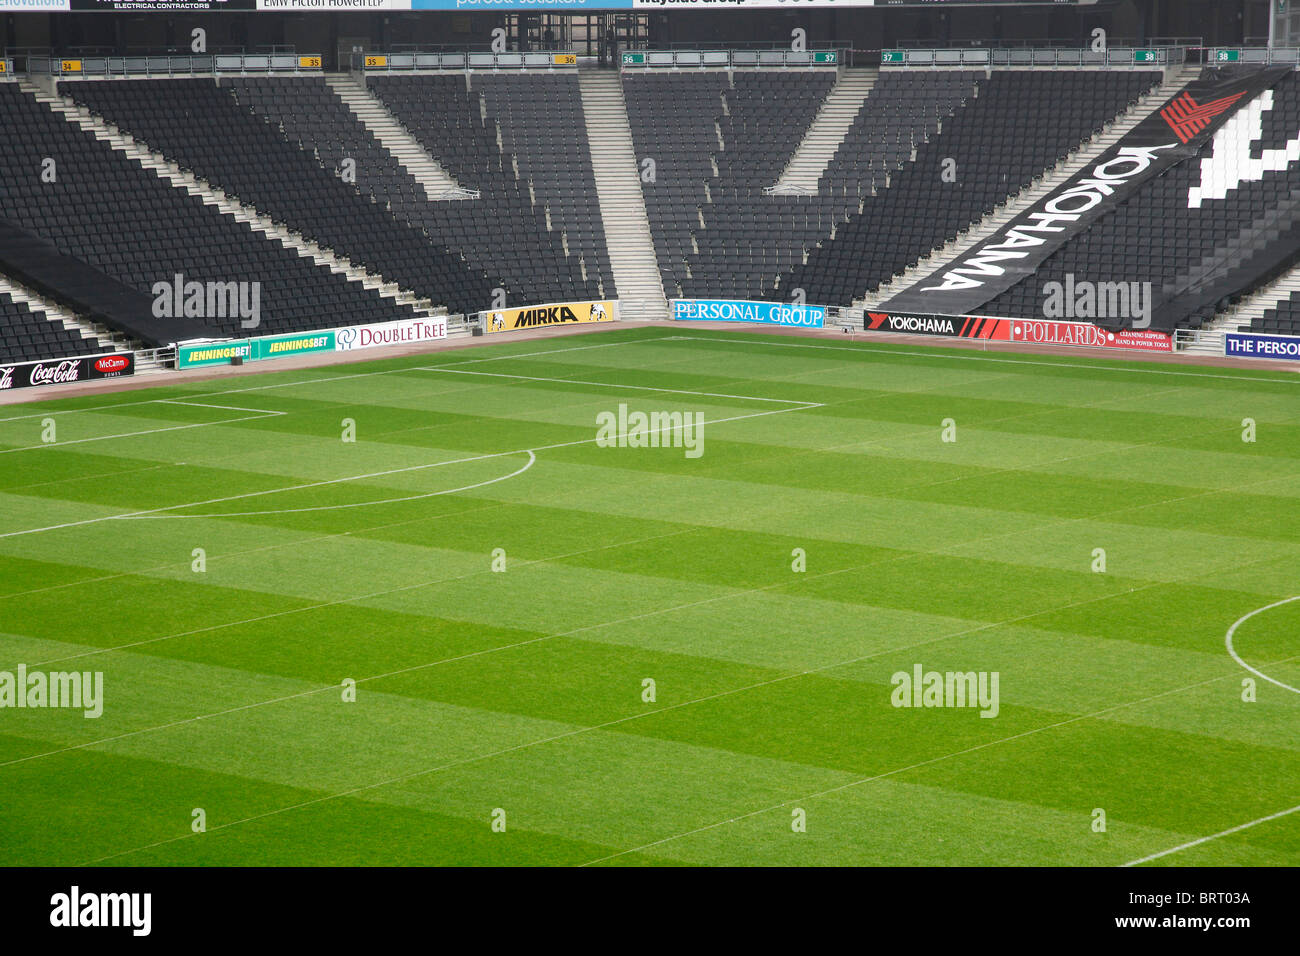 Terraces at MK Dons football stadium - Stock Image